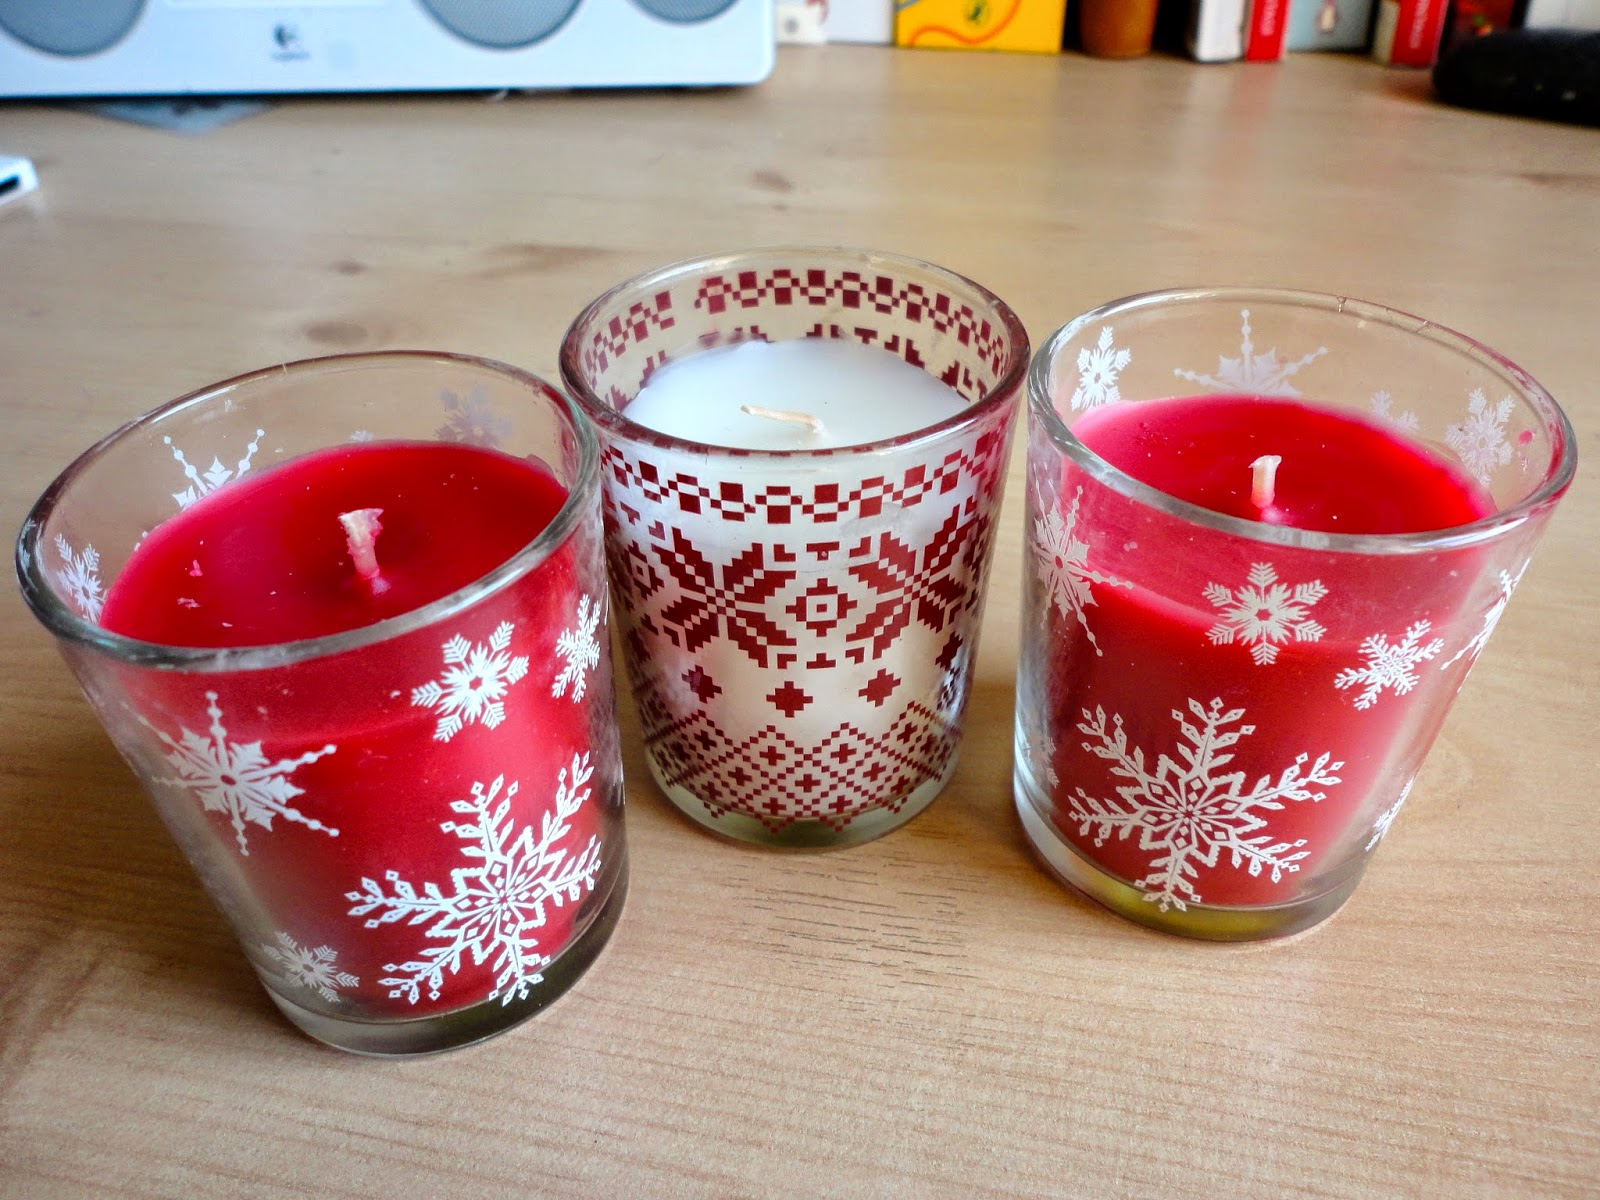 Red and white Christmas scented candles in glass holders